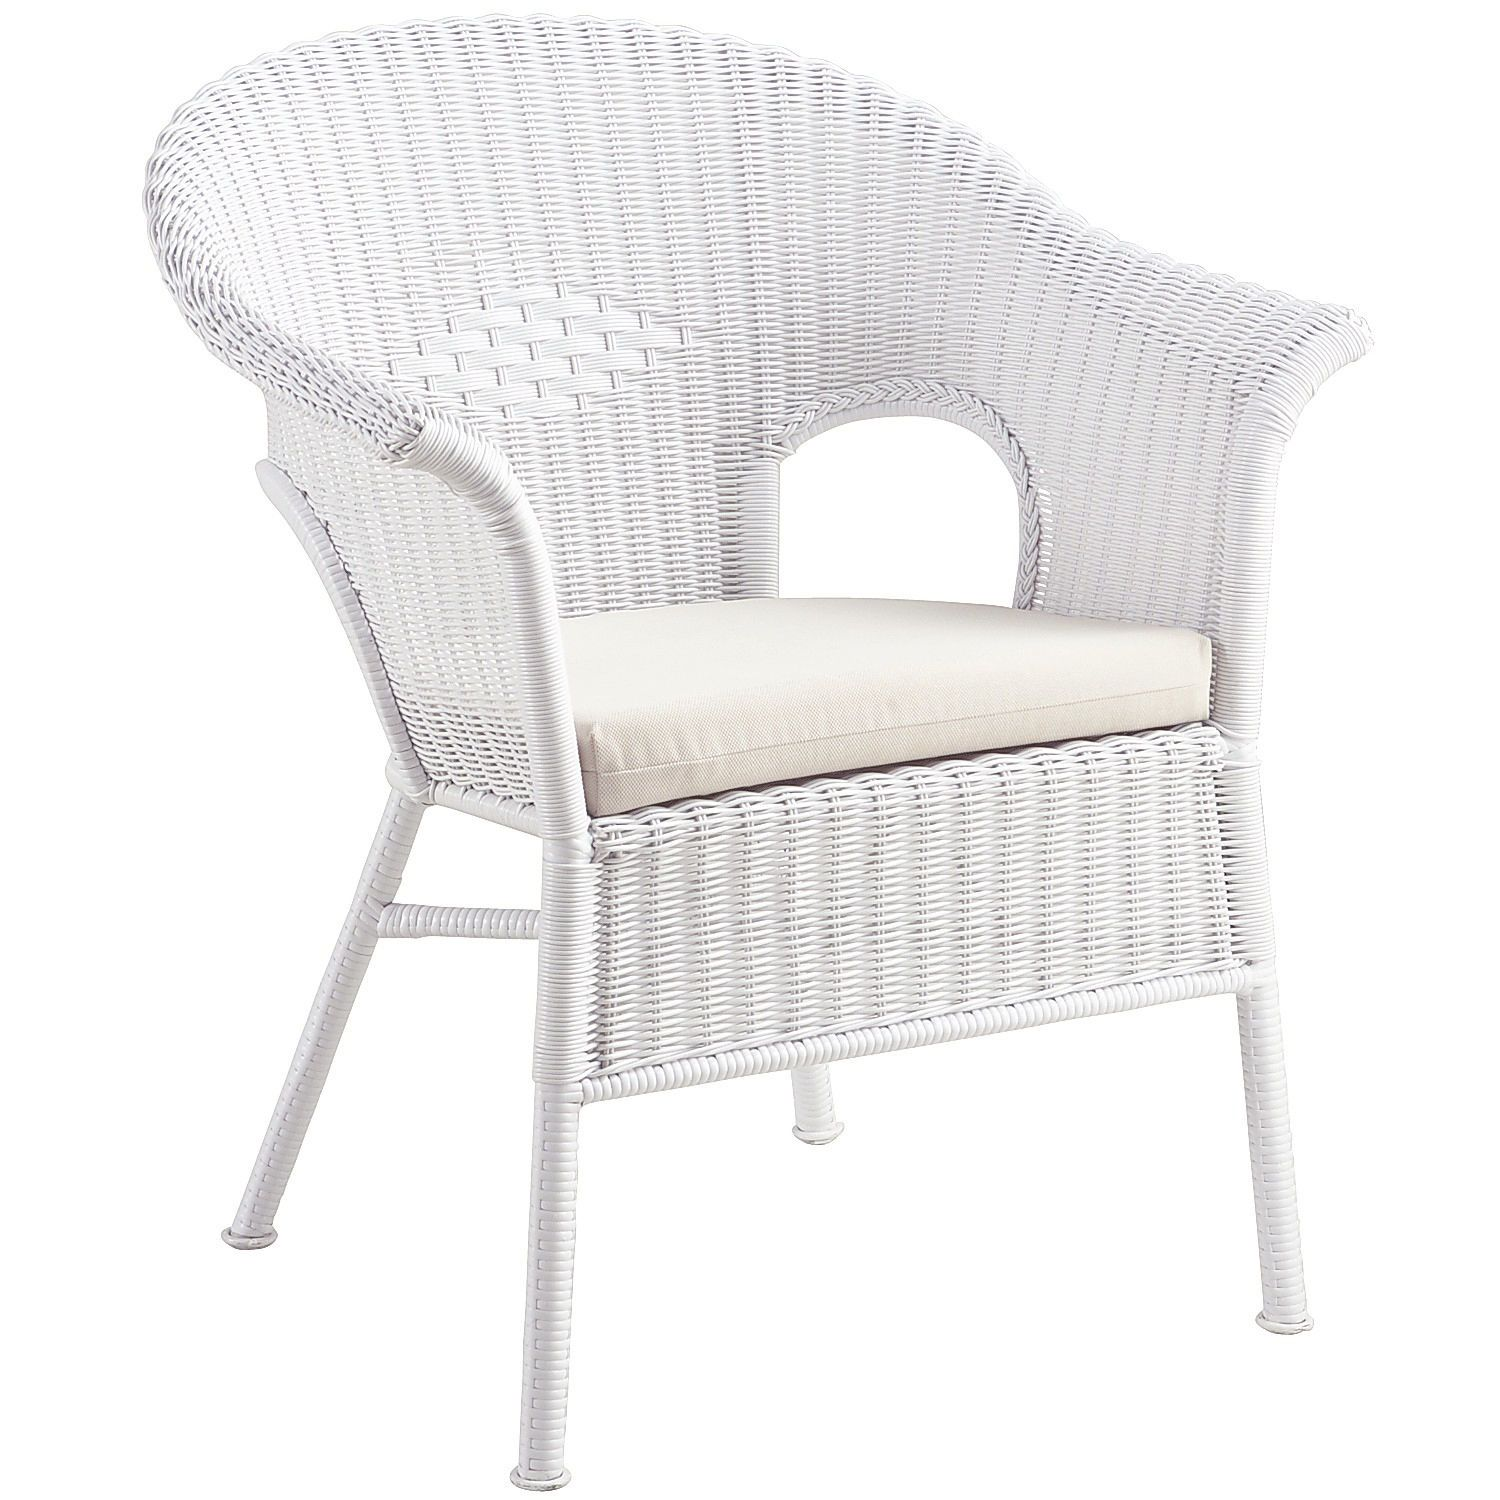 Charming Casbah White Stacking Chair